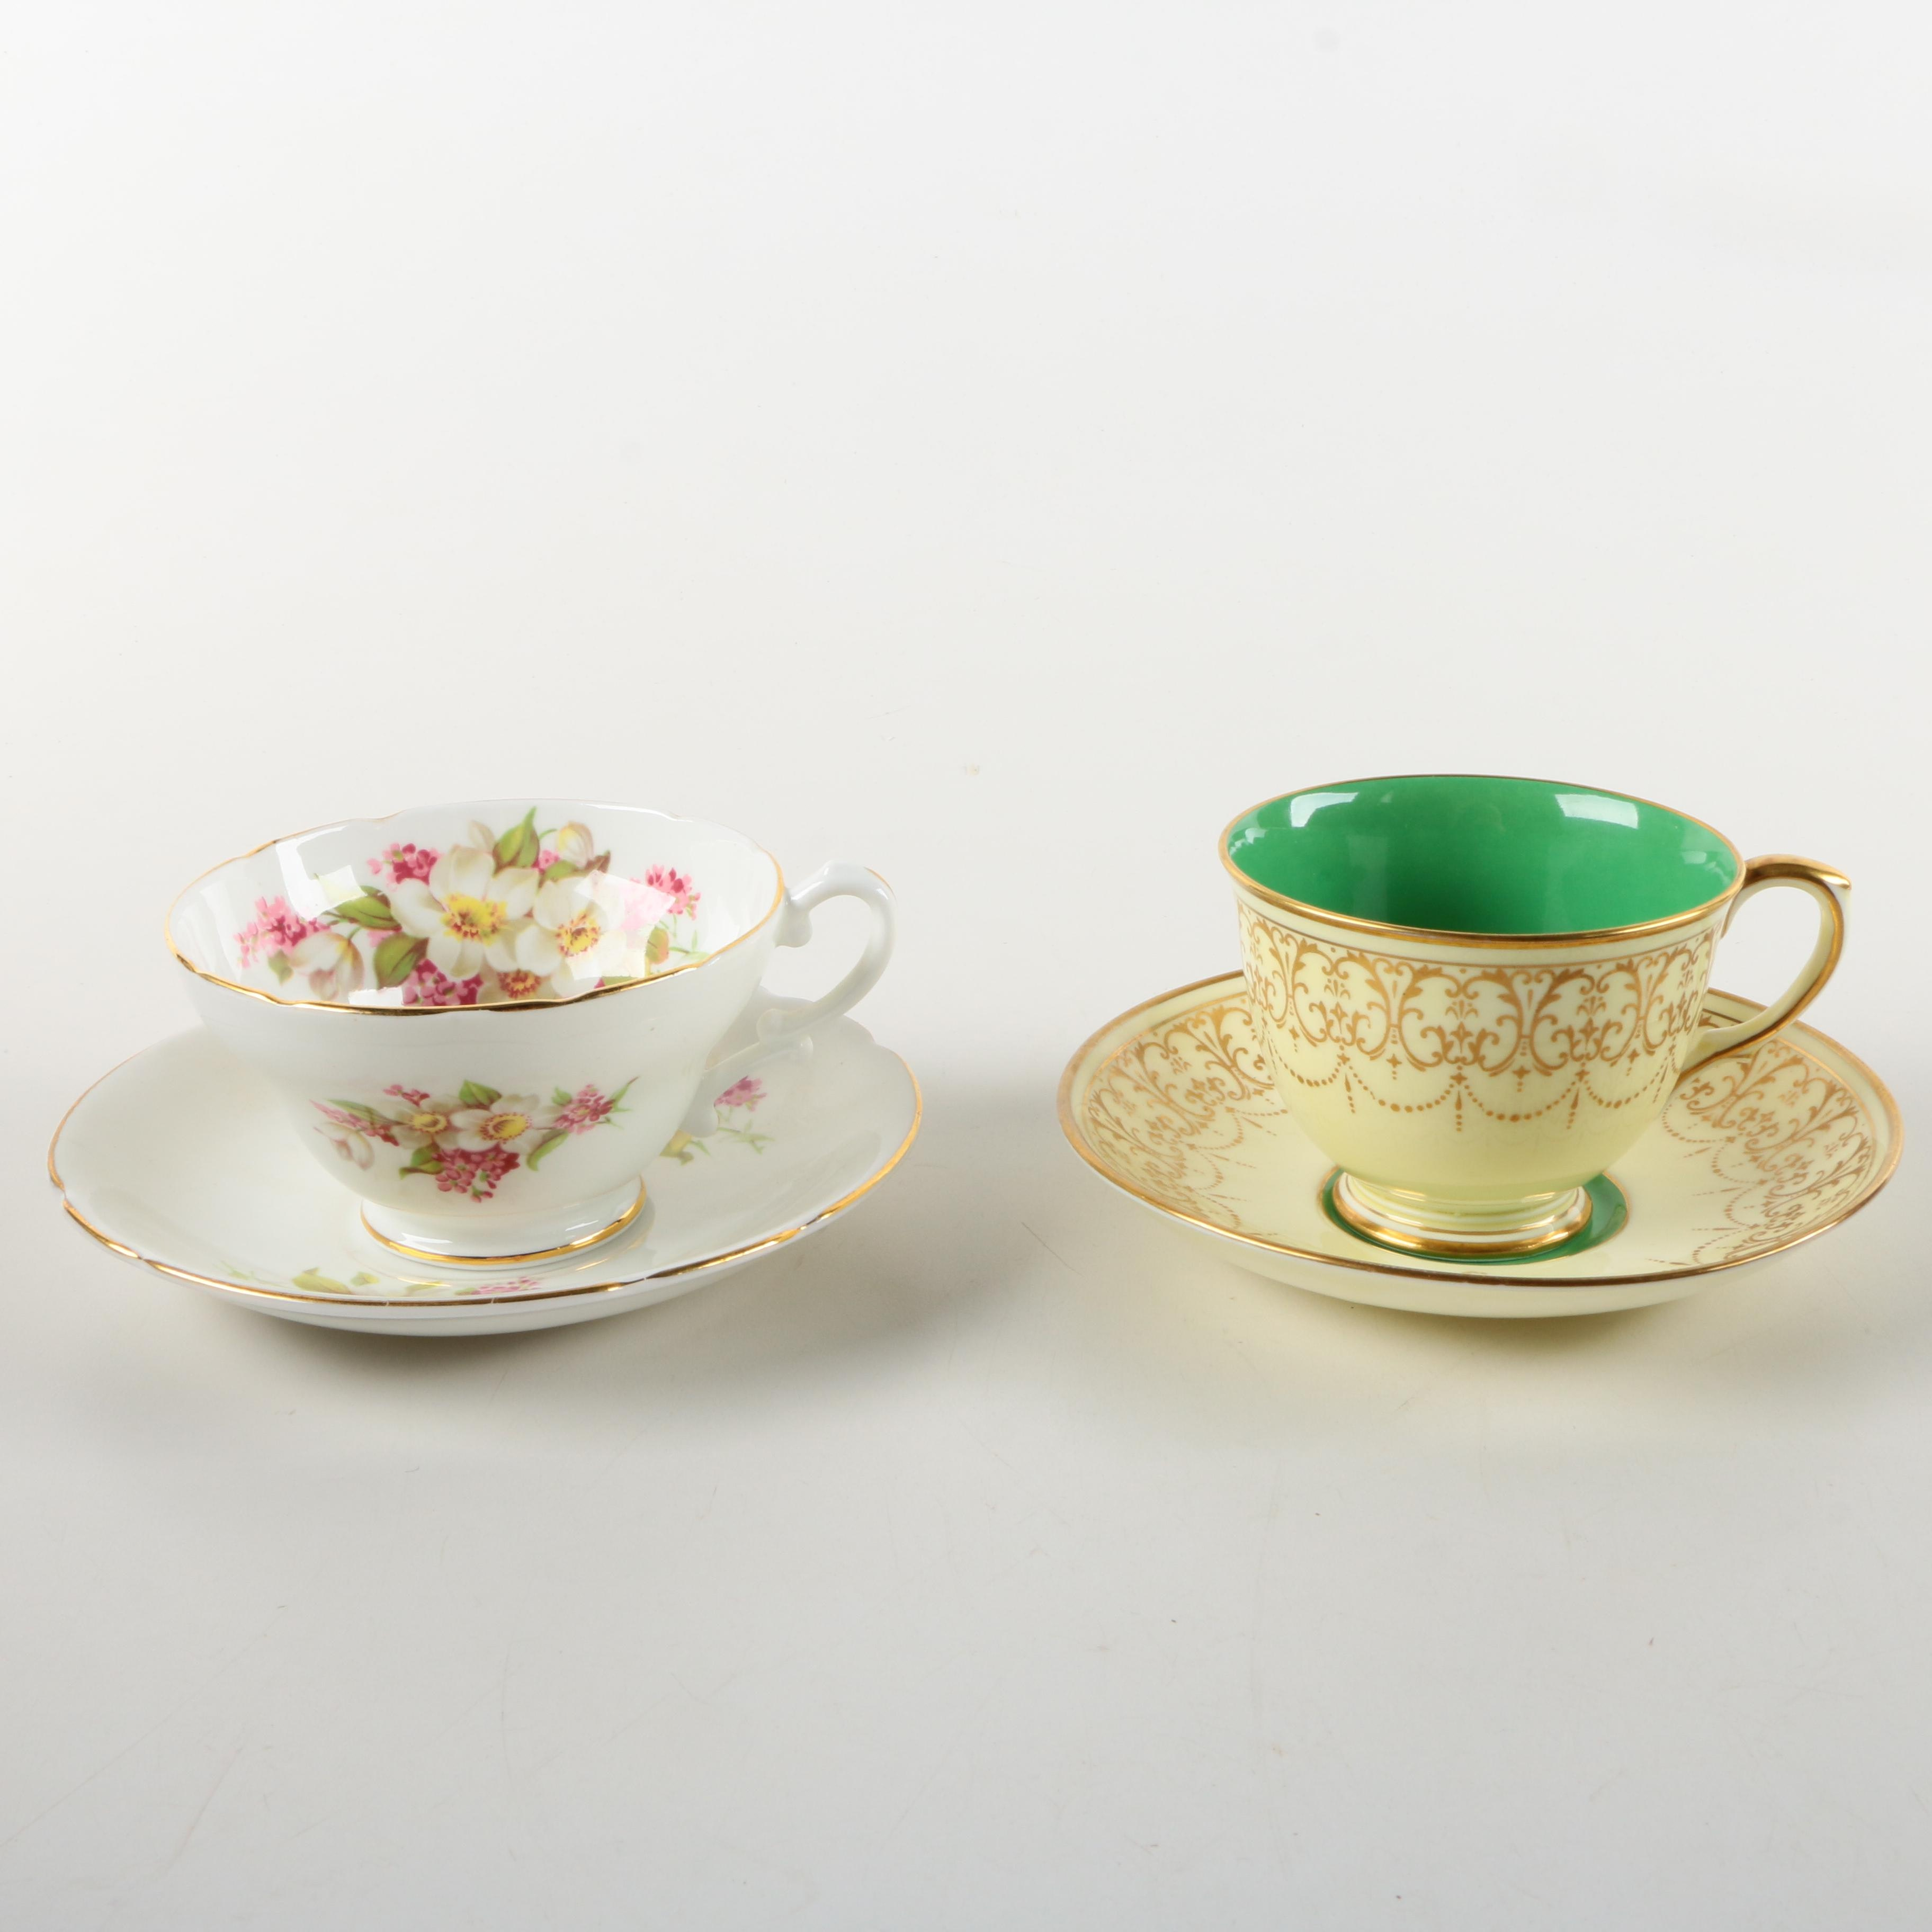 Porcelain Teacups and Saucers Featuring Crown Staffordshire